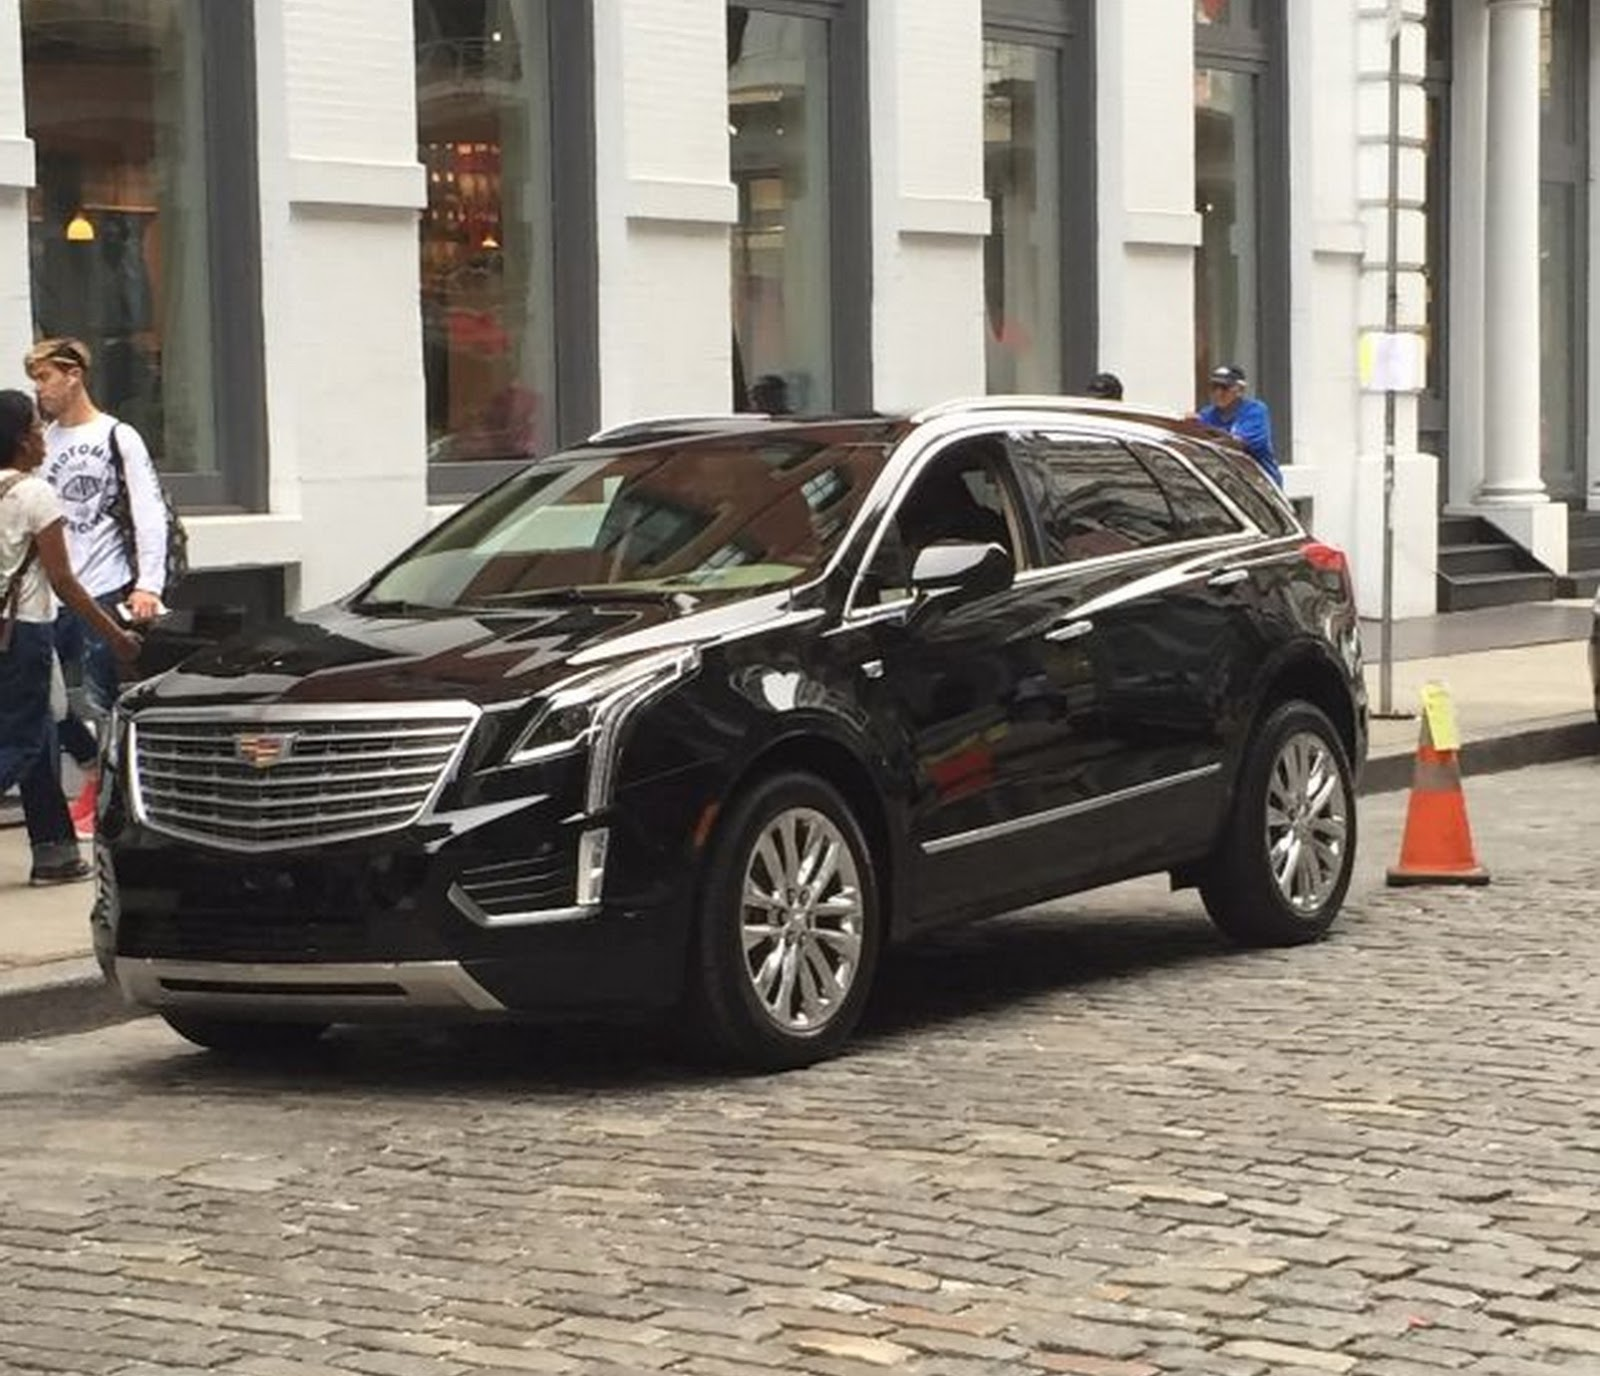 New 2016 Cadillac: New 2016 Cadillac XT5 Spotted Undisguised! Replaces SRX